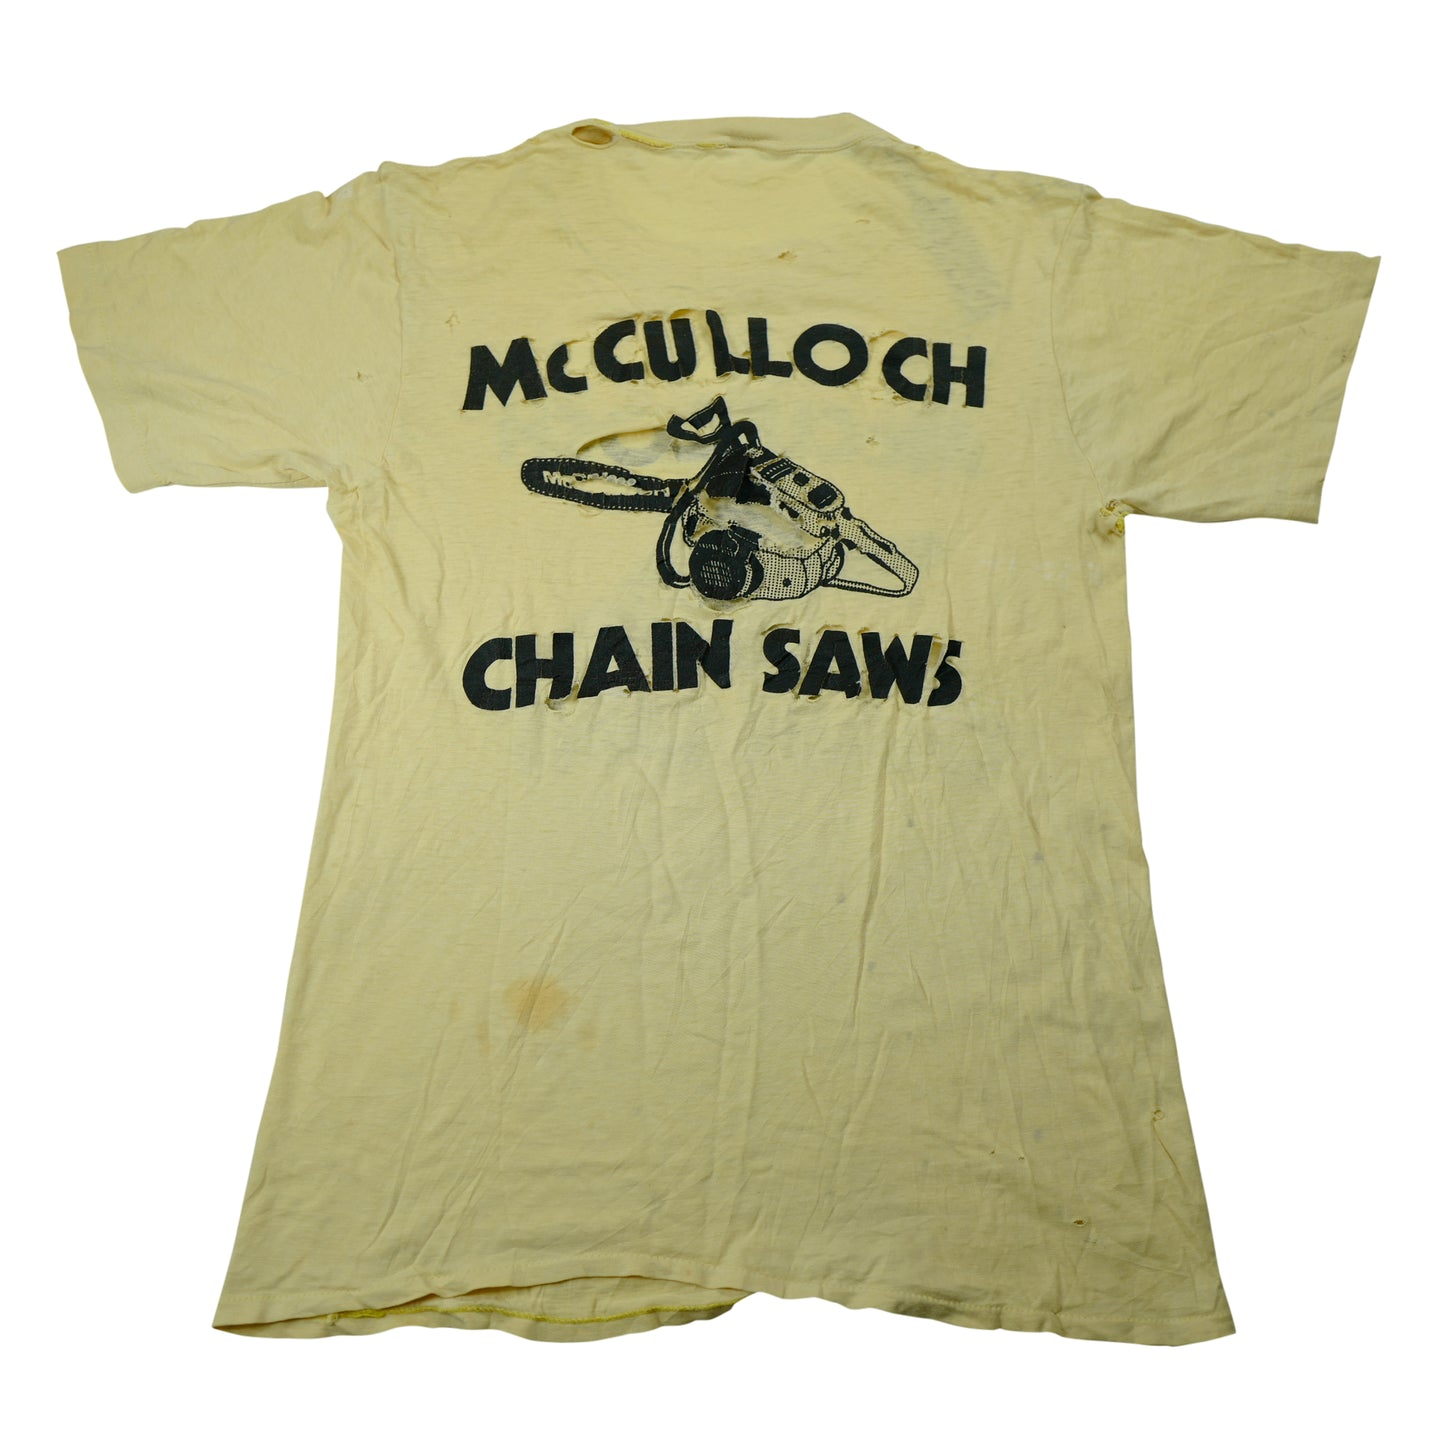 Vintage Thrashed McCulloch Chain Saws Tee